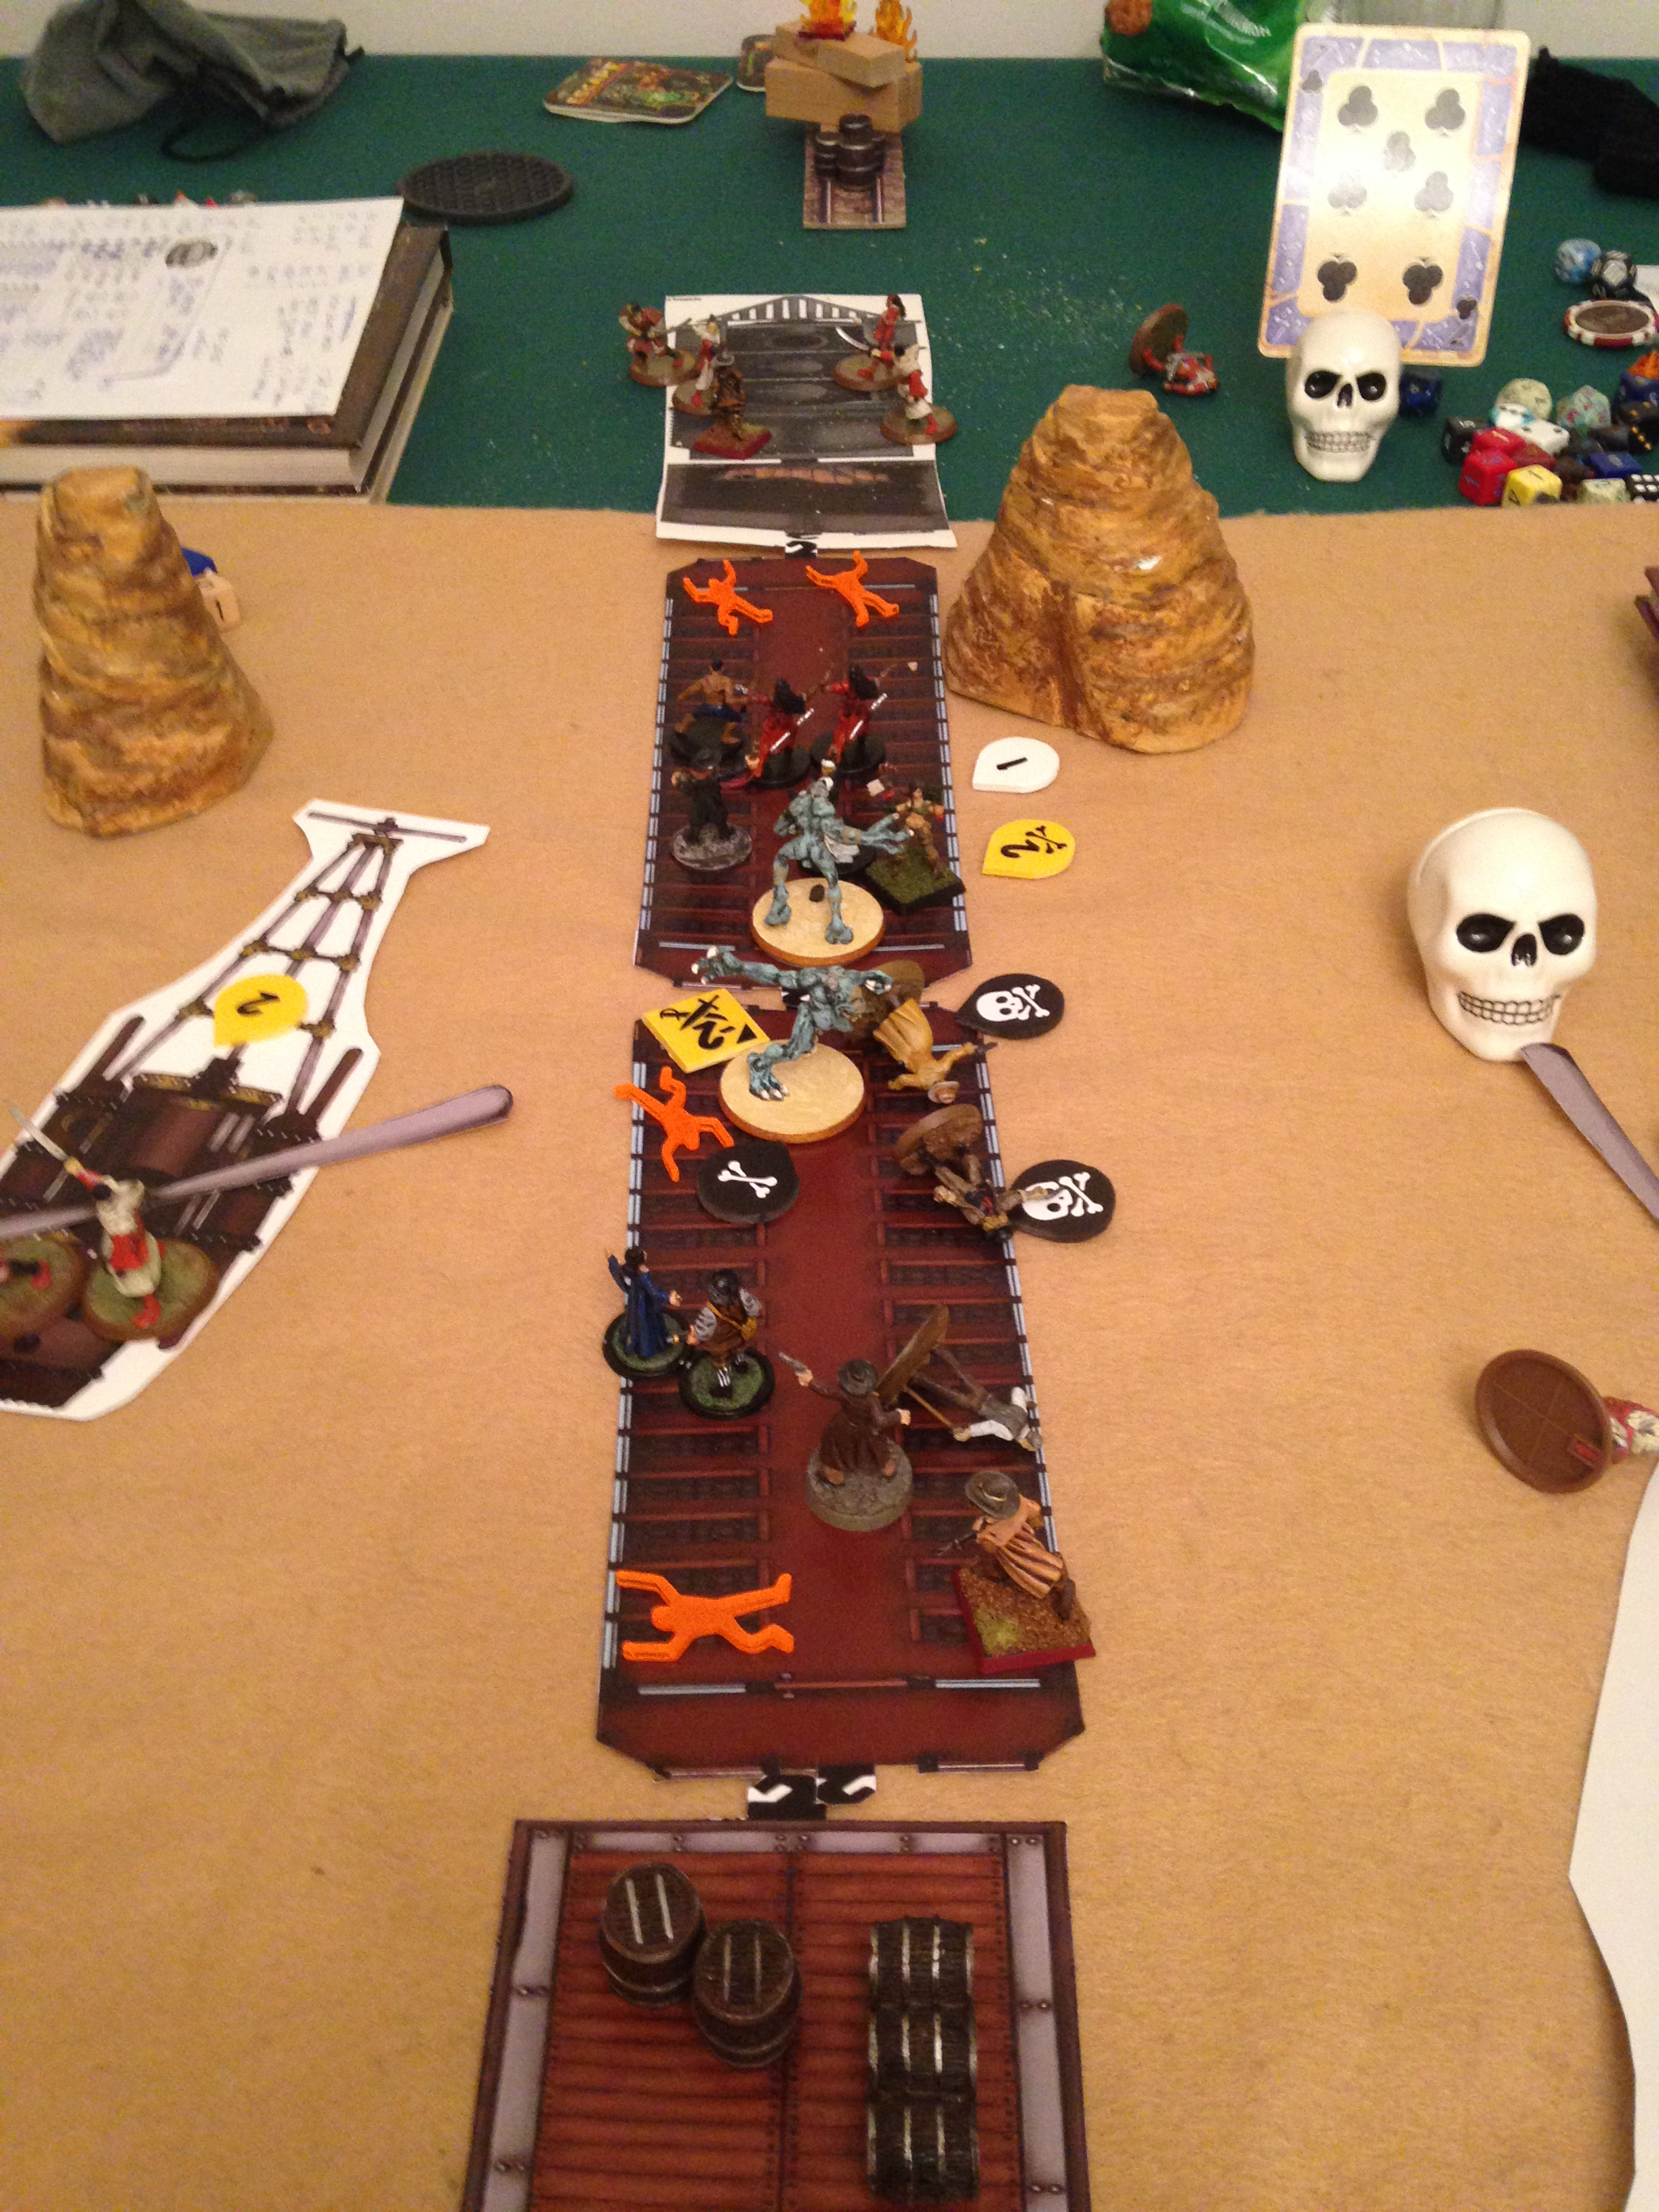 Things are looking bad for the posse as two Chinese Ogres attack.